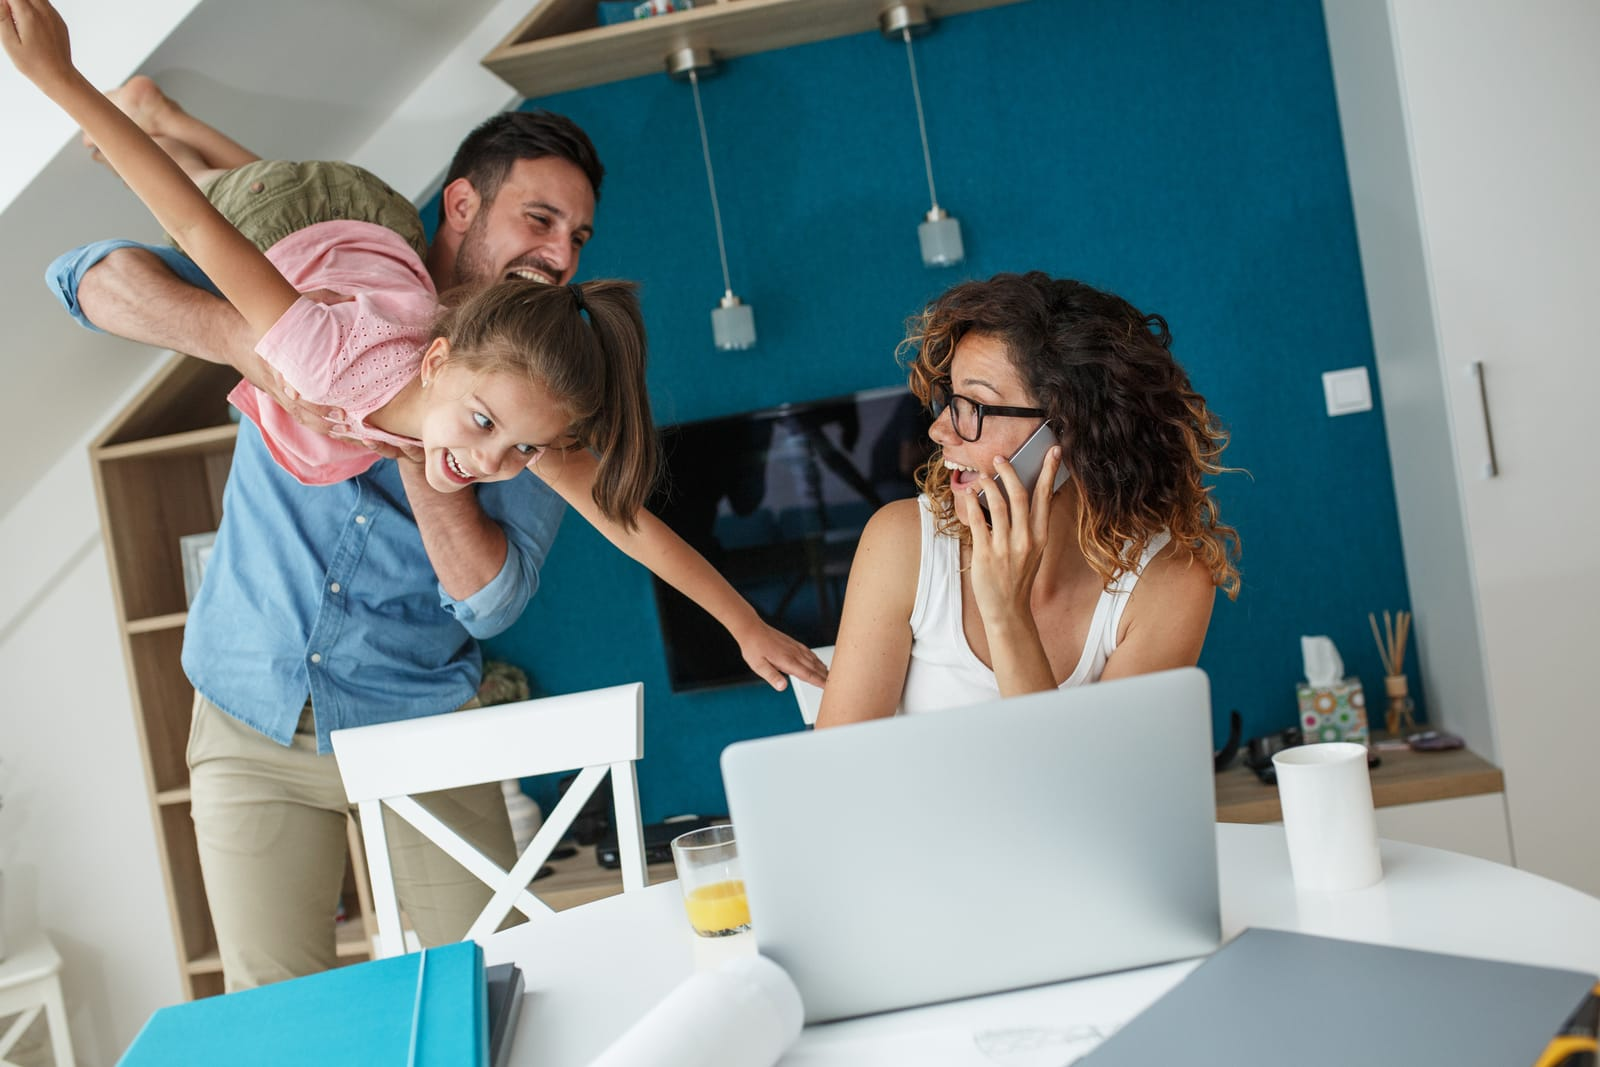 Work-life balance in the age of Covid-19